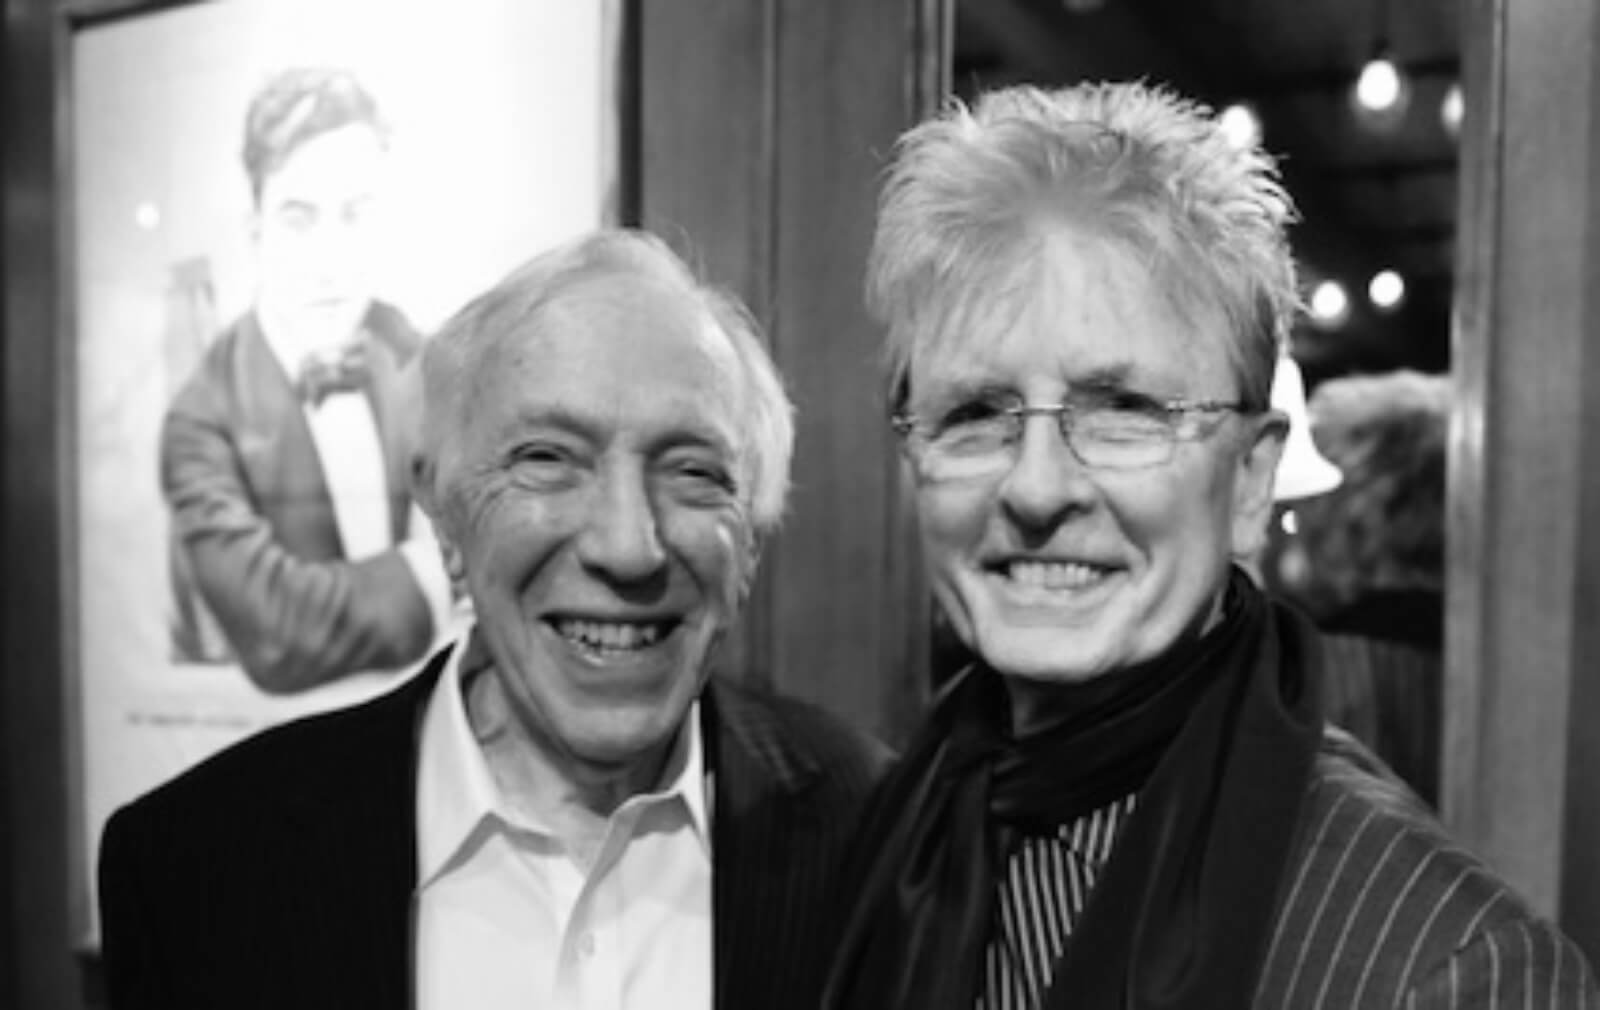 Black and white photo of Bernie Gersten (producer) wearing a black blazer and Paul Huntley (wig designer) wearing a scarf and button up shirt.